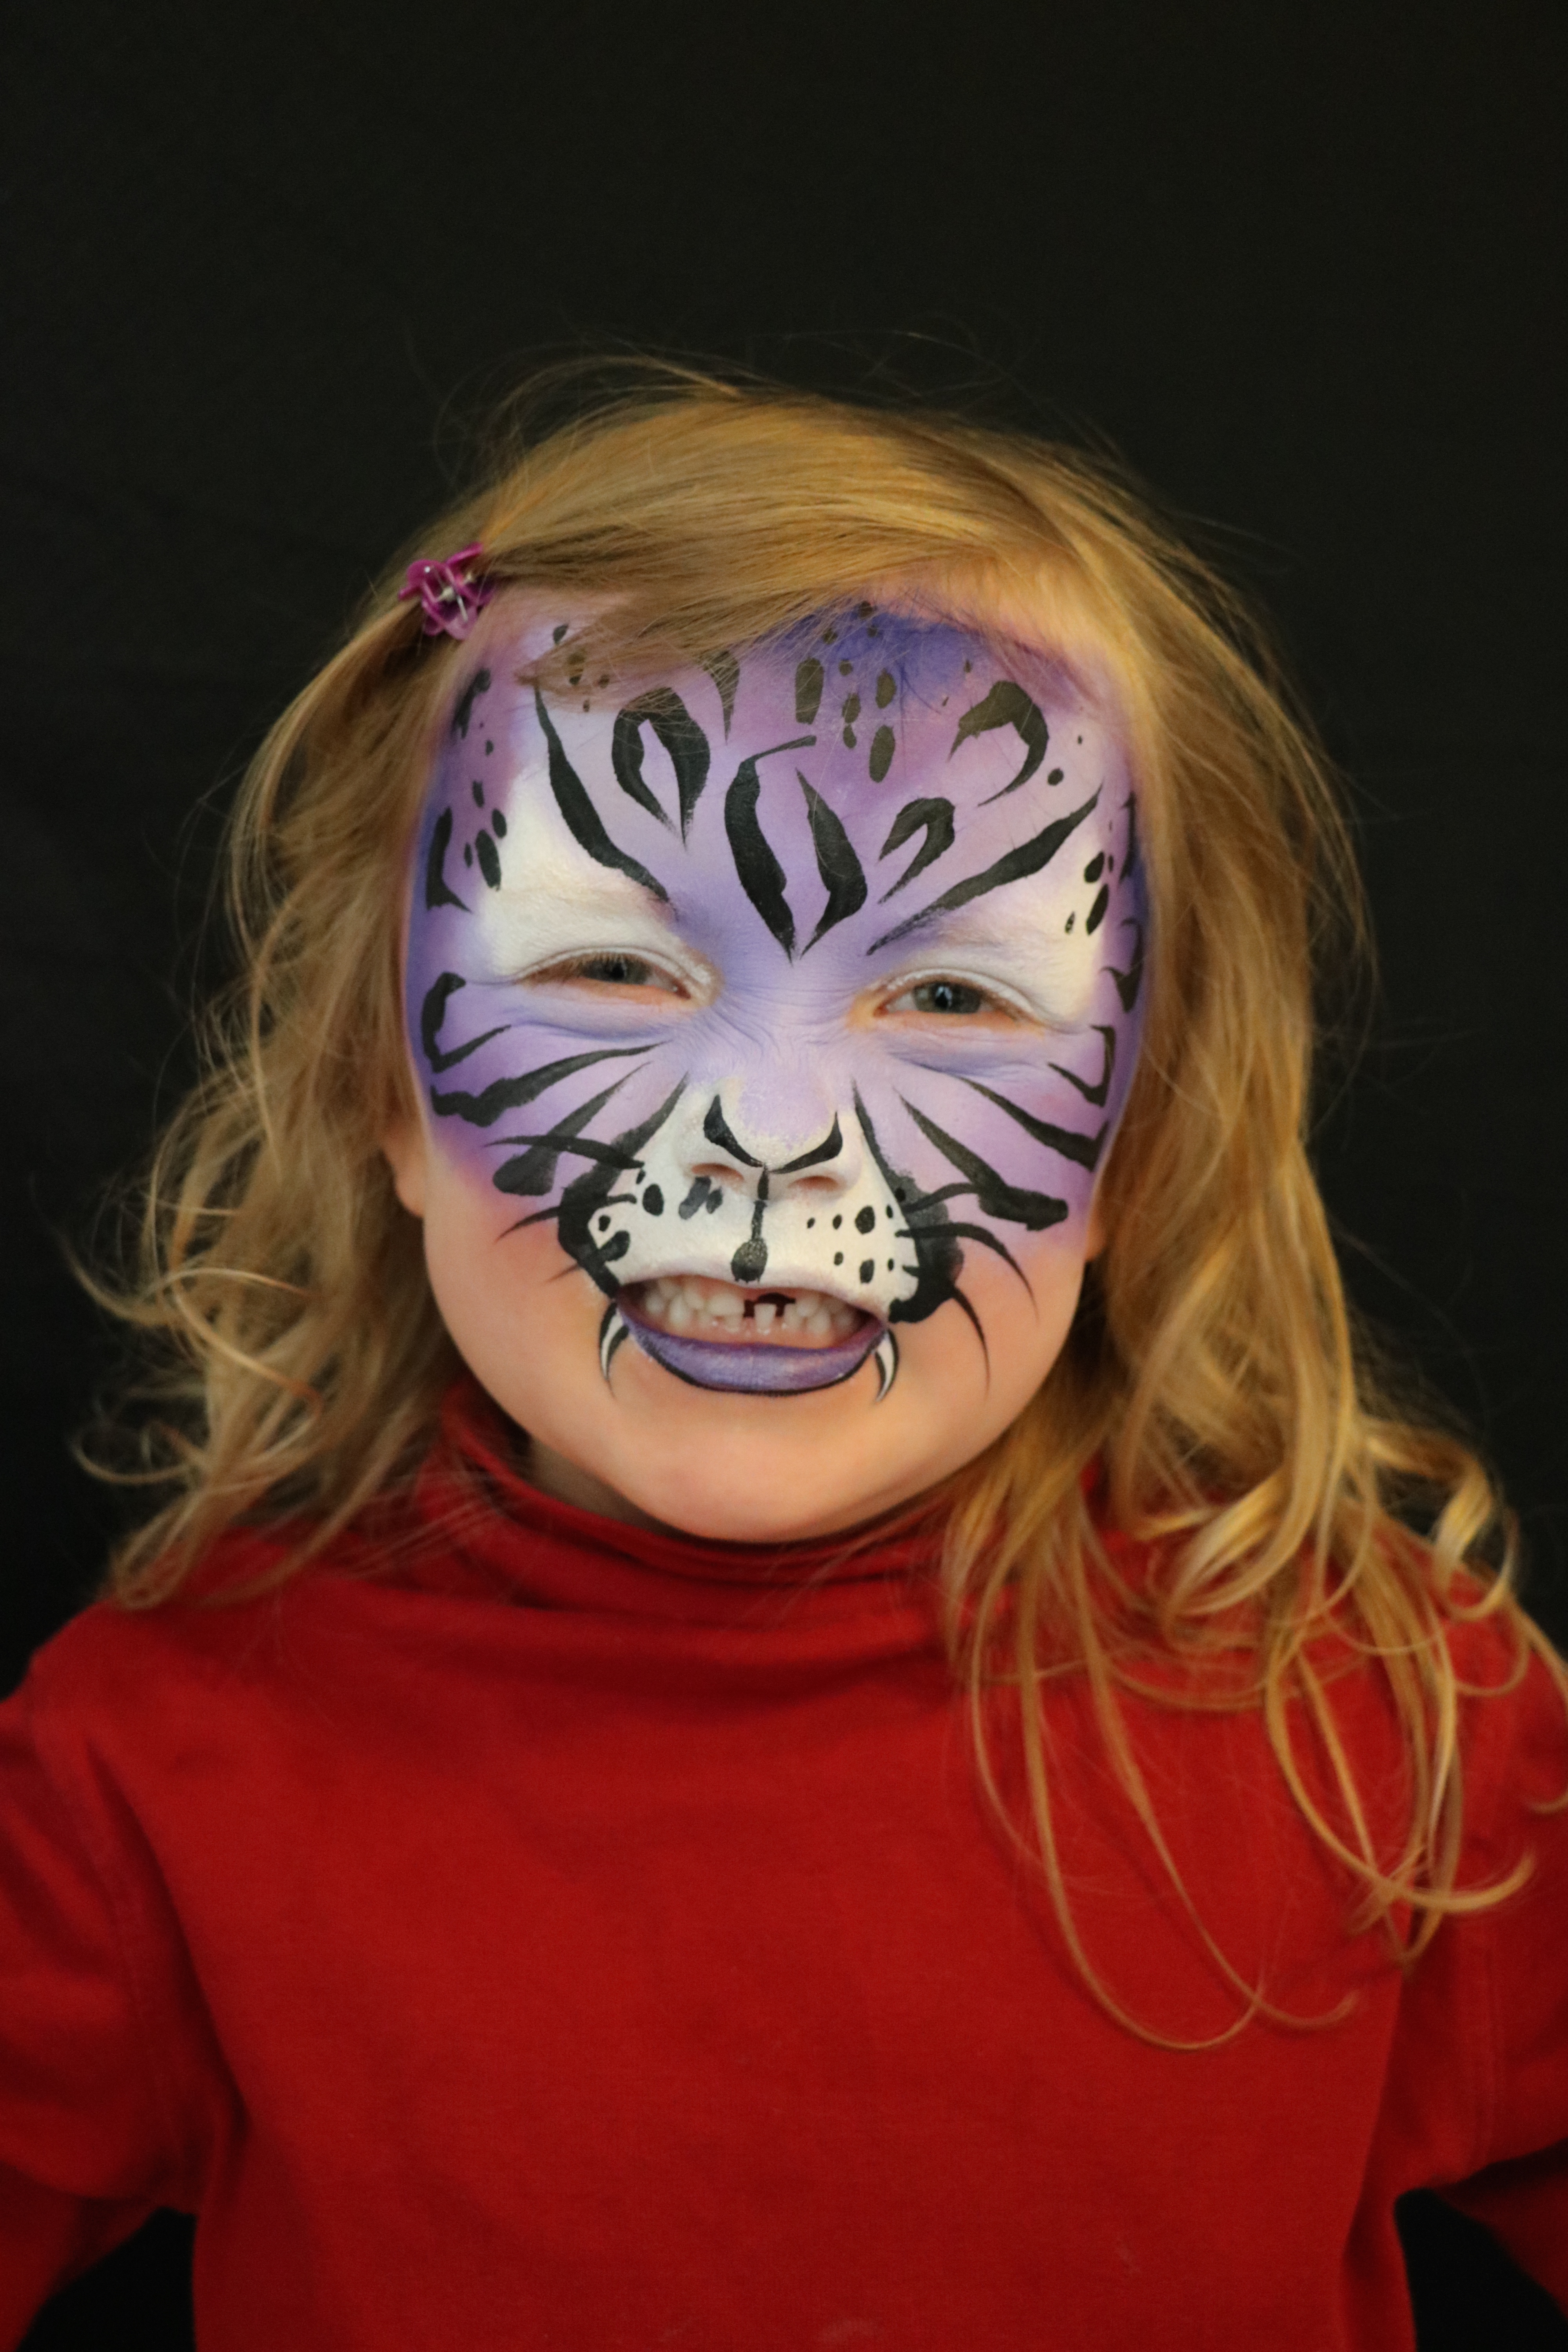 Kinderschminken Tiger Bildergalerie I Fine Lines Face And Body Art I Leipzig